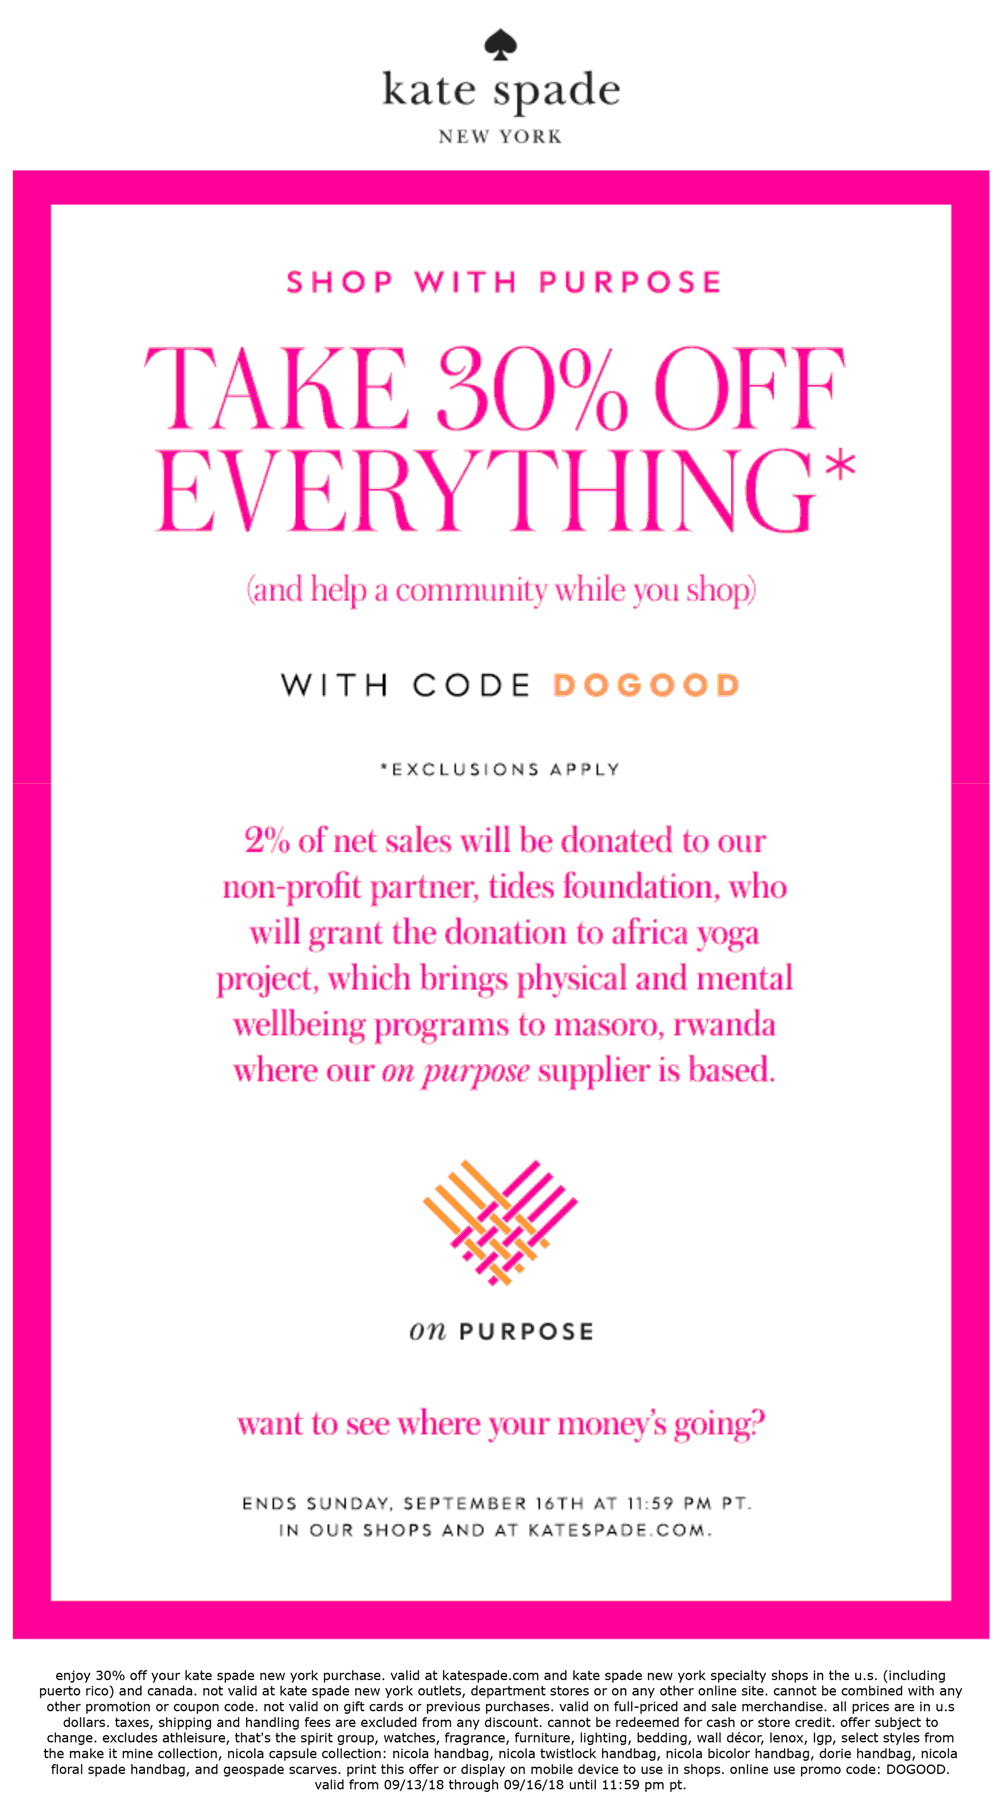 Kate Spade Coupon May 2020 30% off everything at Kate Spade, or online via promo code DOGOOD